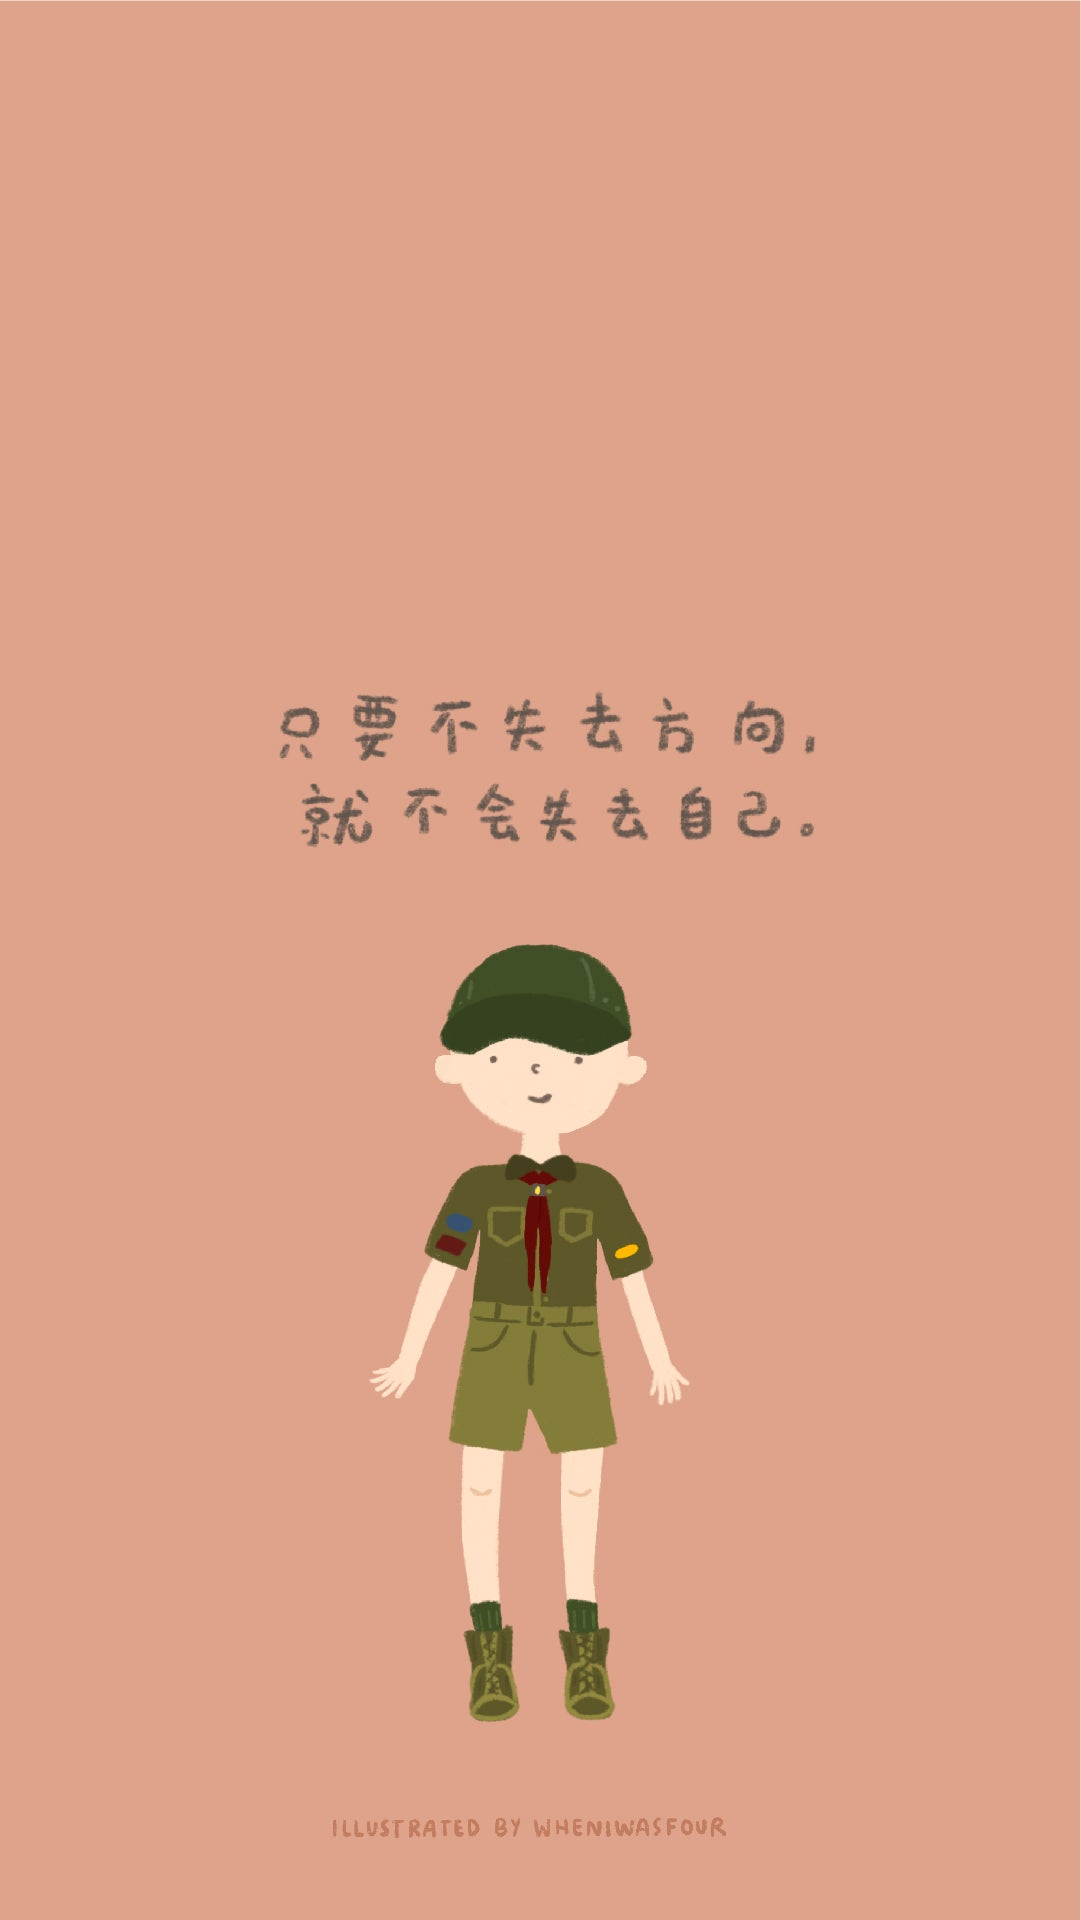 phone wallpaper of a digital illustration of a chinese verse about not losing hope and direction even when you're lost